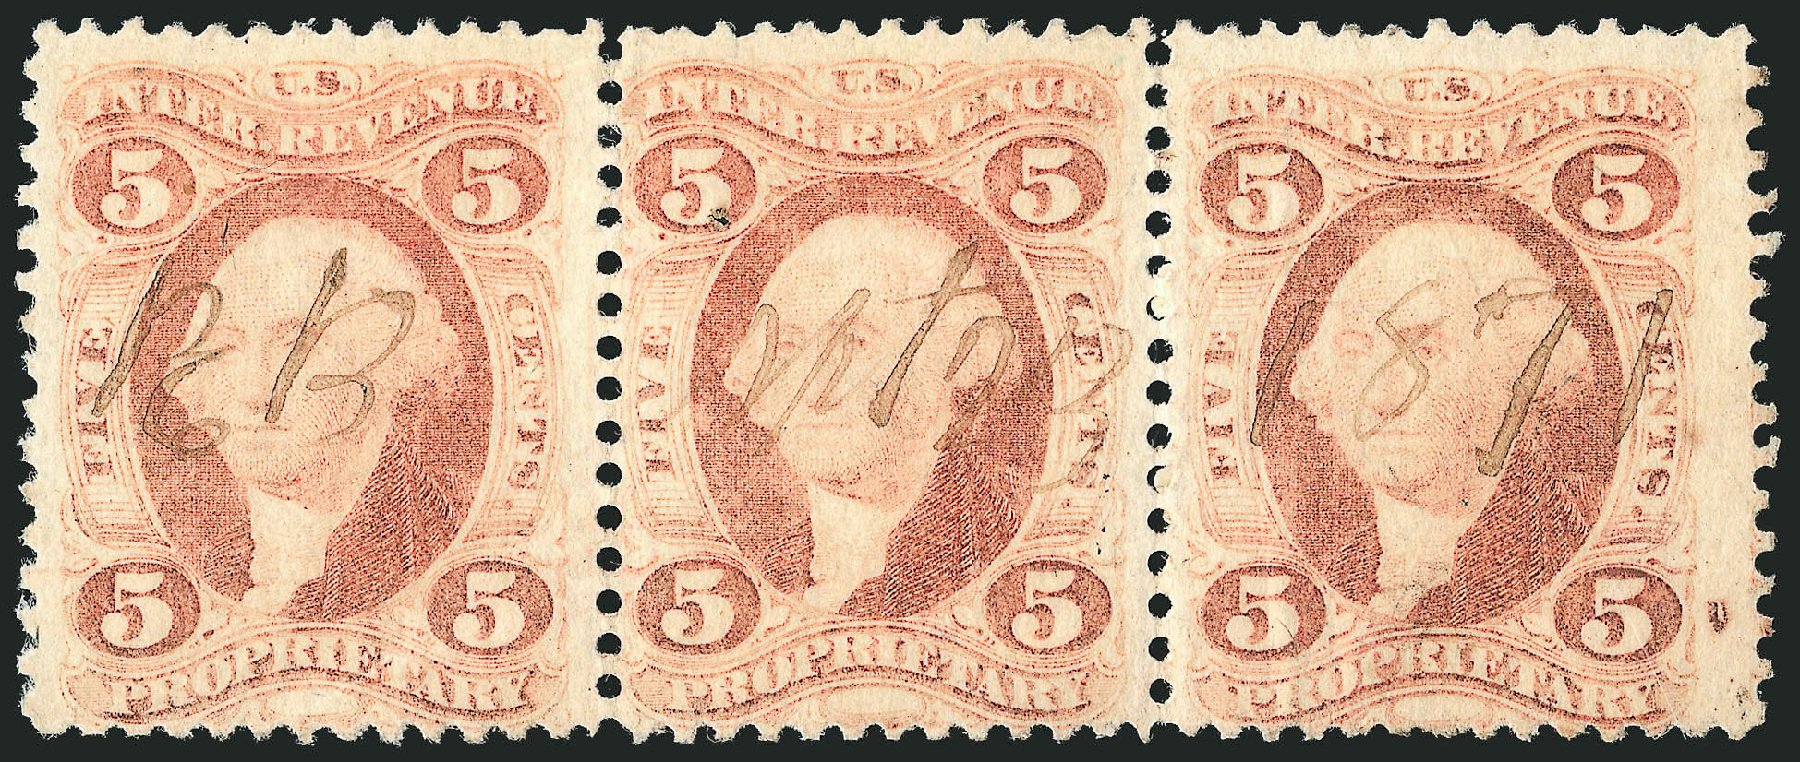 Costs of US Stamp Scott Catalogue R29: 5c 1864 Revenue Proprietary. Robert Siegel Auction Galleries, Dec 2014, Sale 1089, Lot 459